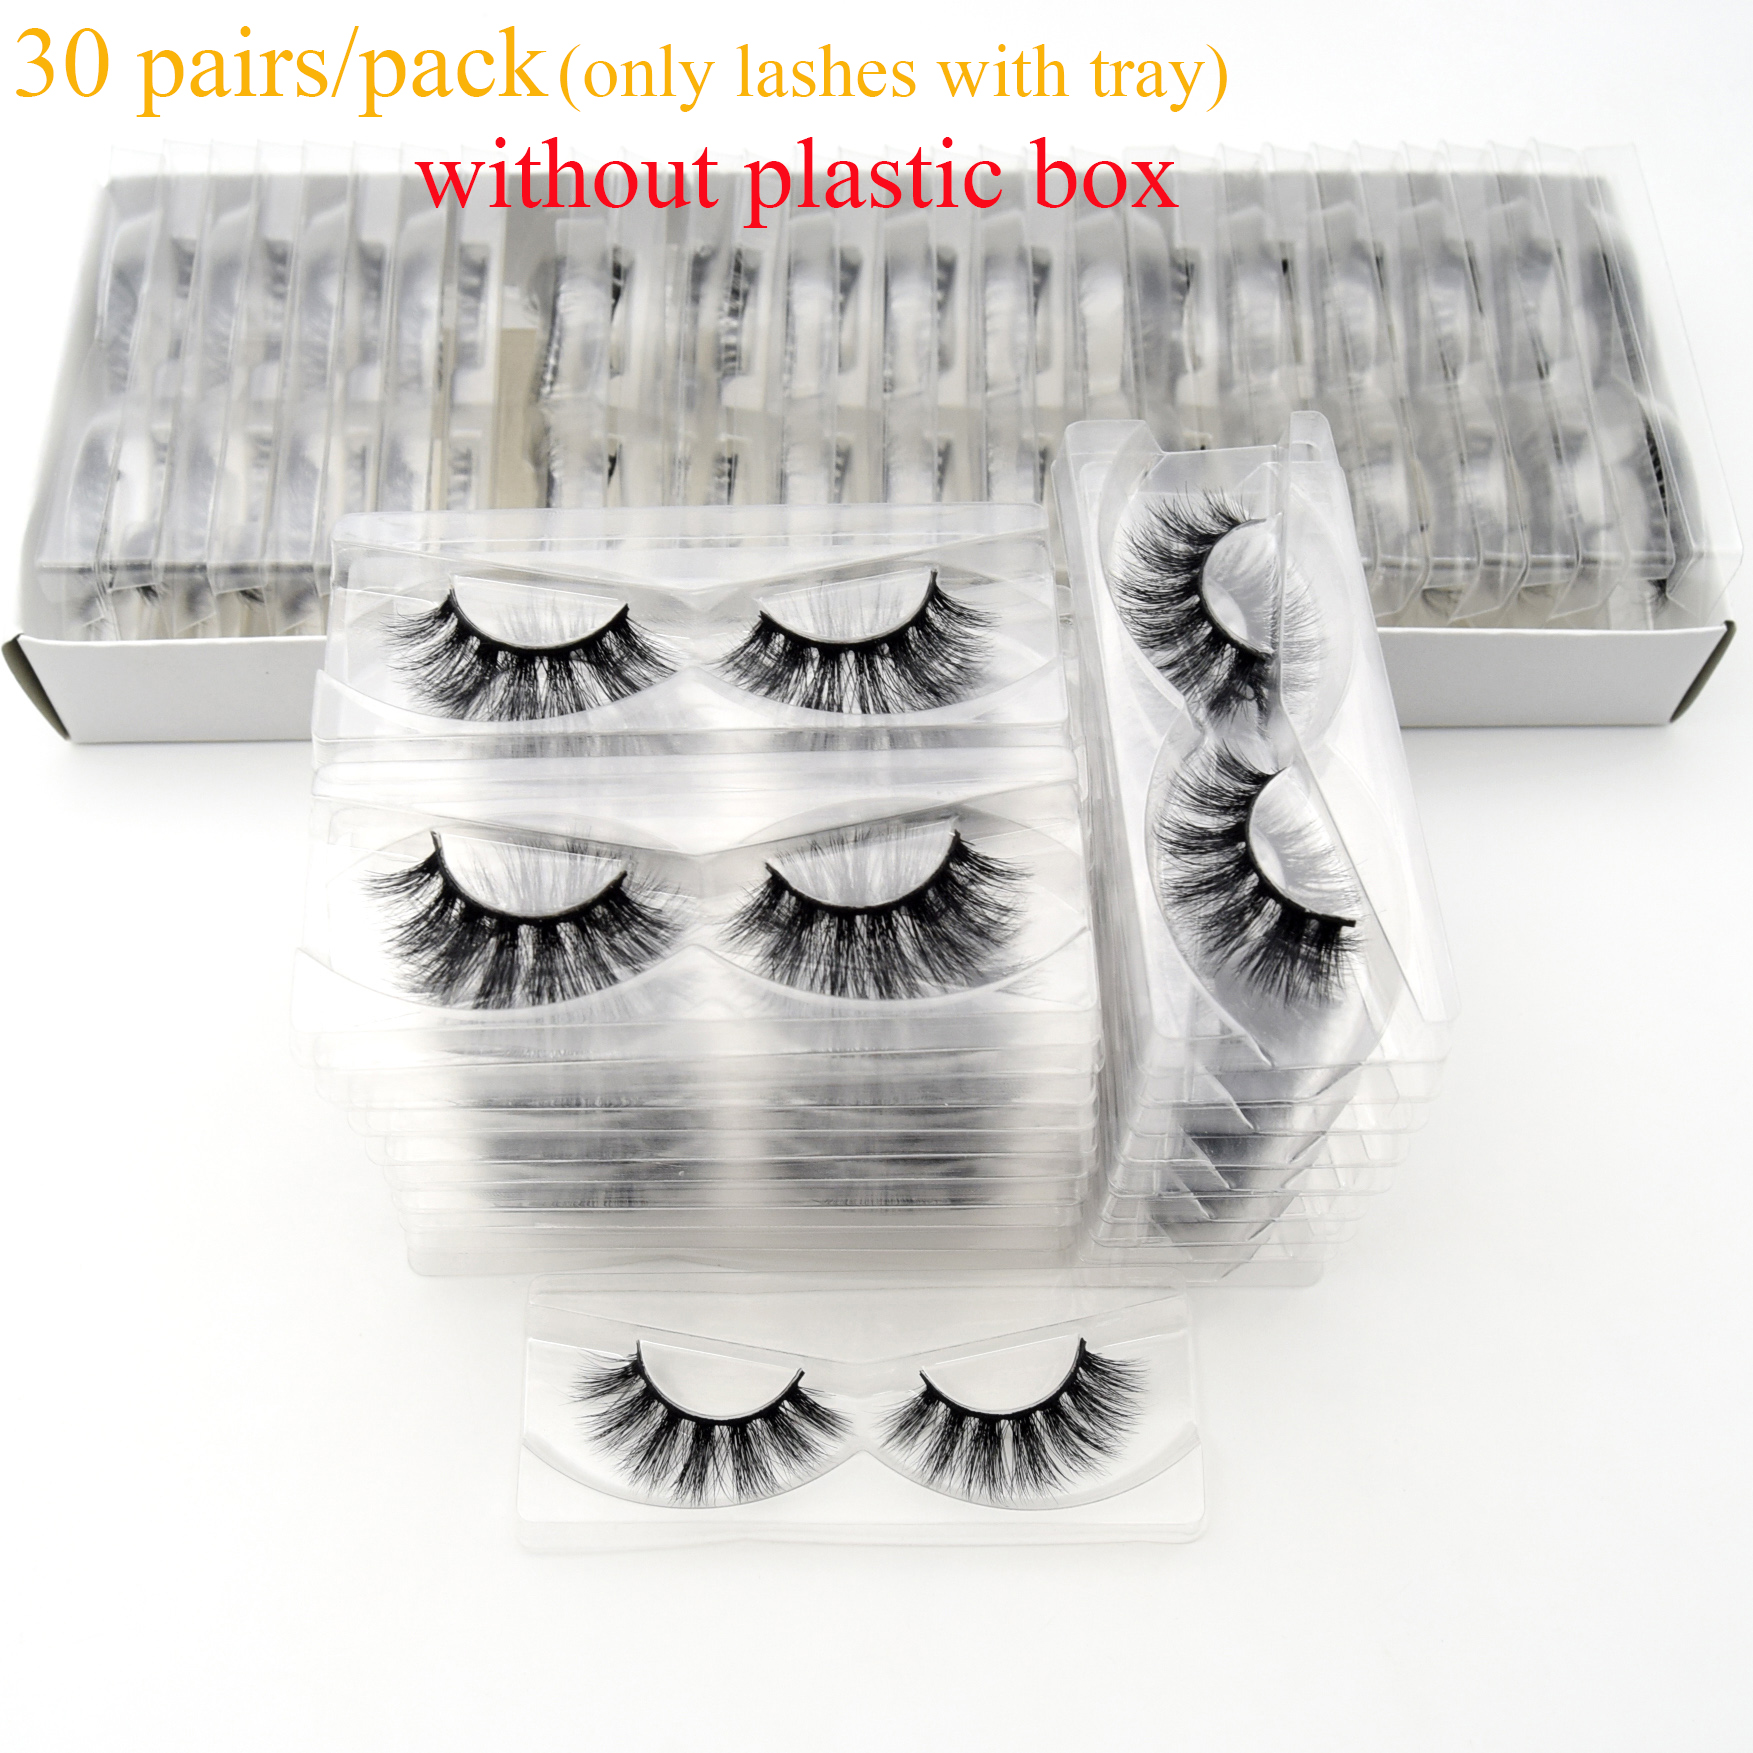 30/40pairs/pack Visofree Mink Eyelashes With Tray No Box Handmade Natural False Eyelashes Full Strip Lashes Reusable Long Lashes